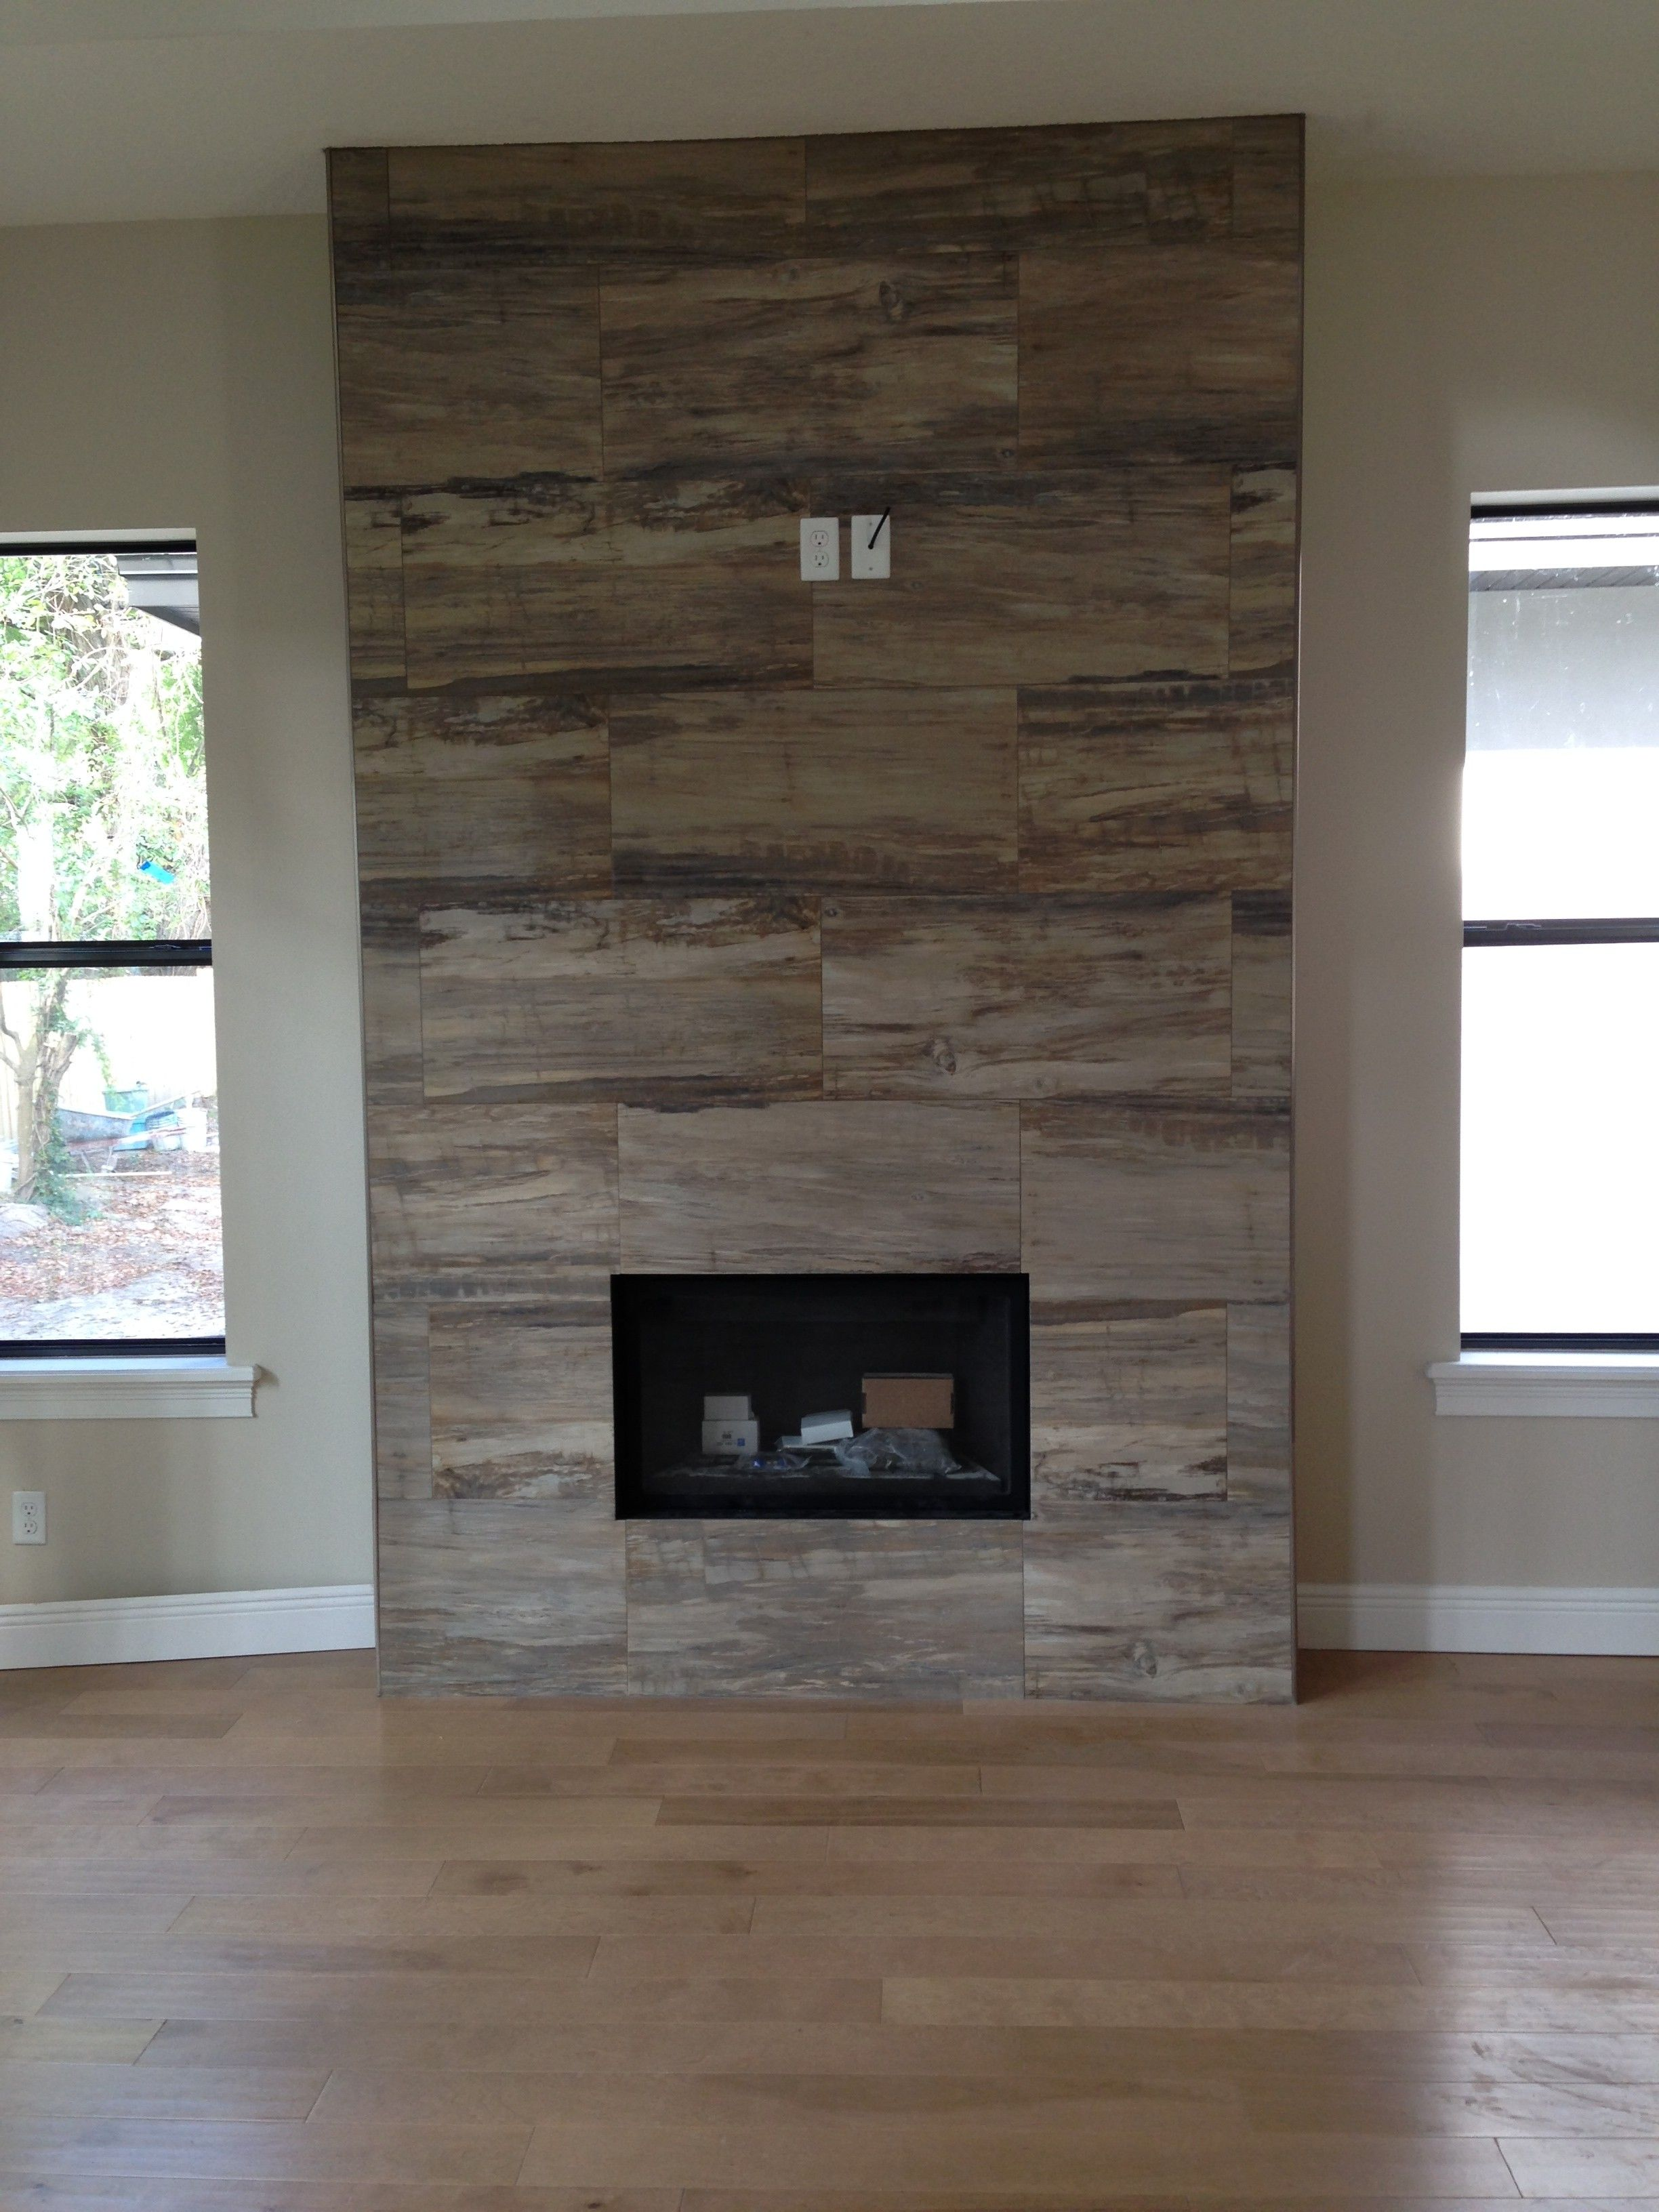 Fireplace Finishes Ideas J Wood Tile Makes An Absolutely Stunning Fireplace